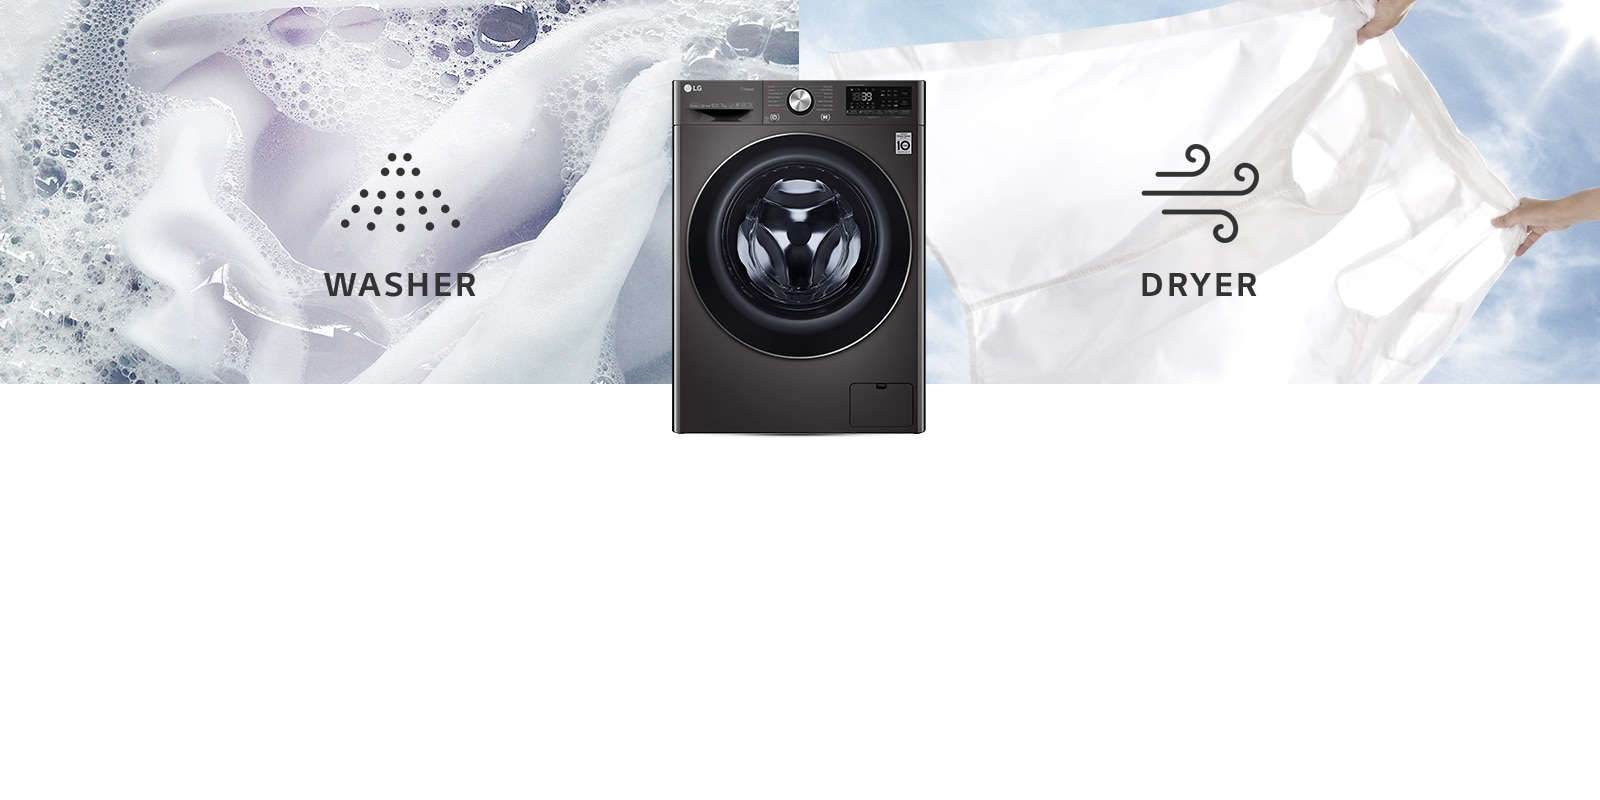 LG FHD1057STB Washer Dryer combos